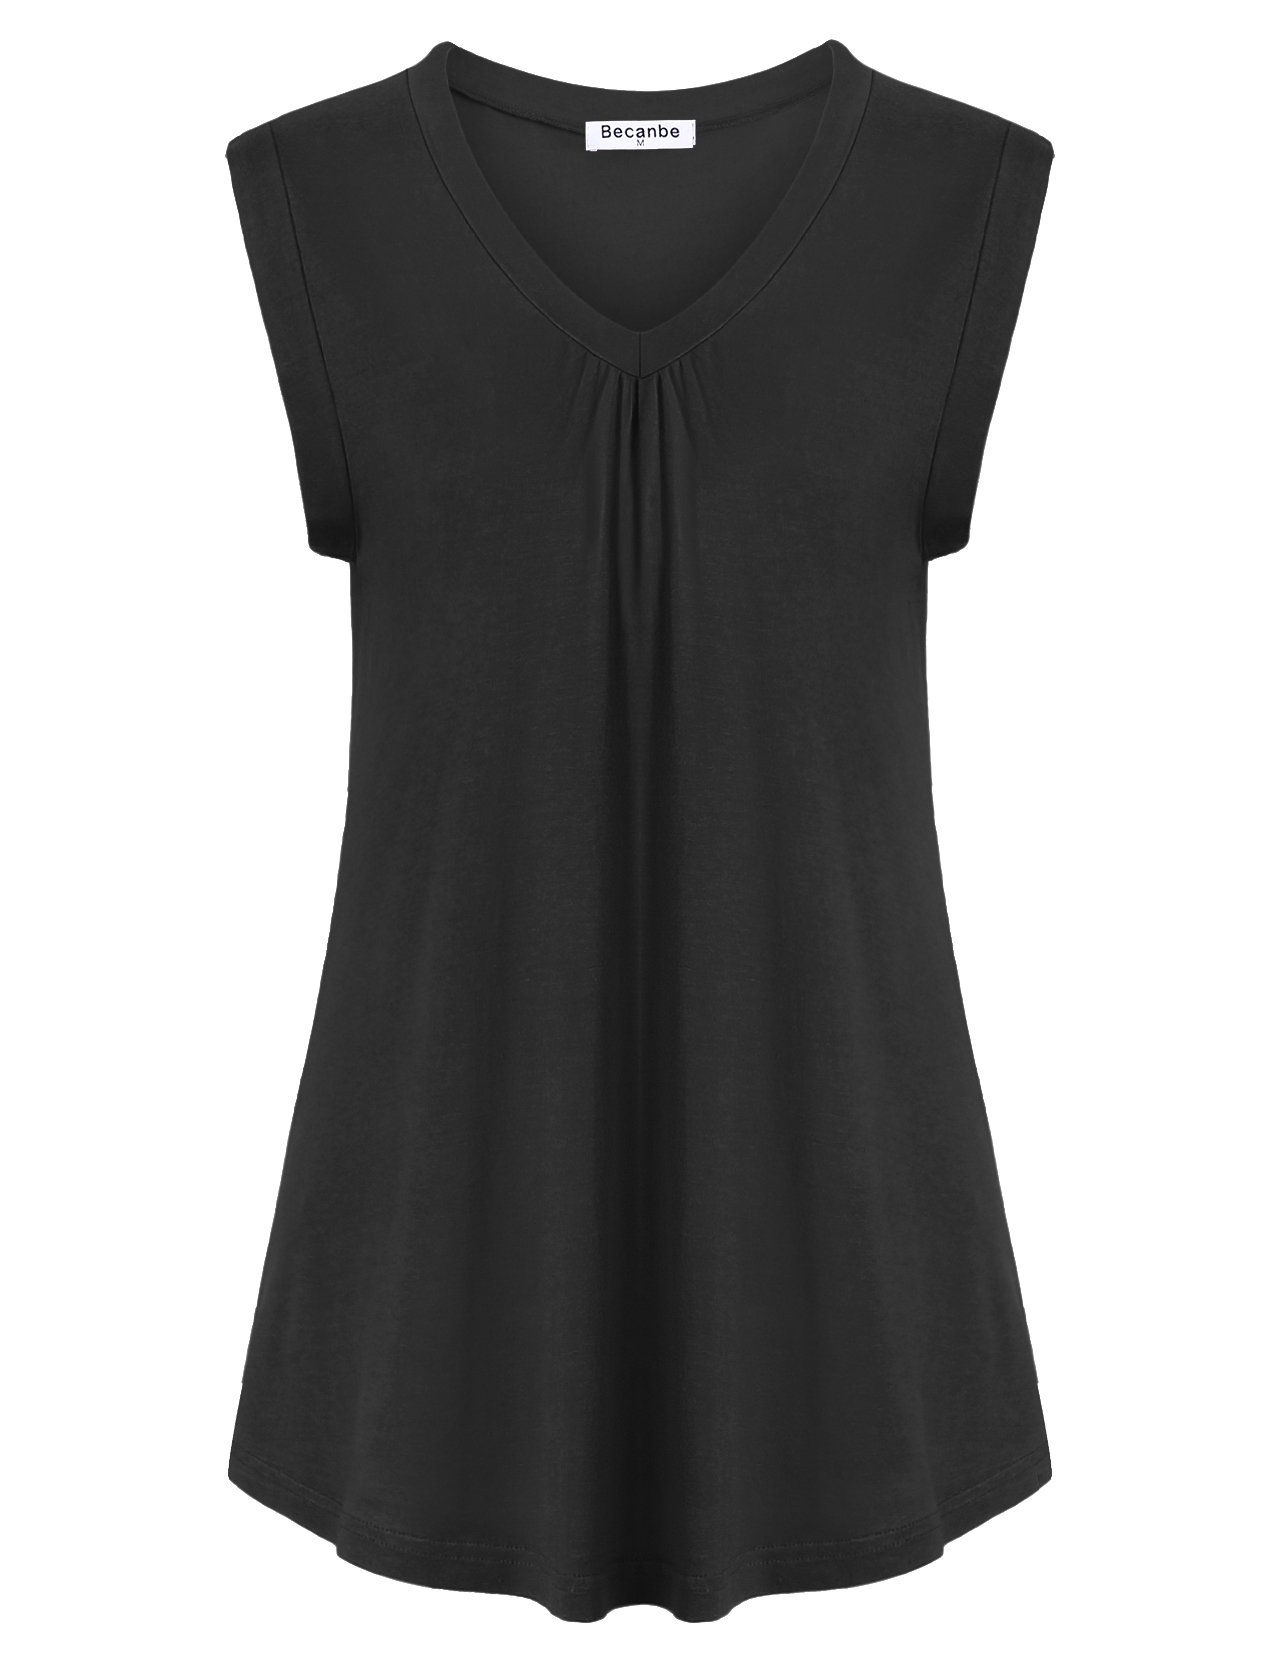 Becanbe Women Tops and Blouses On Sale,Ladies Elegant Pleated V Neck Flowy Flare A Line Ruffled Loose Casual Blouses Flowy Tank Top(Black,X-Large)